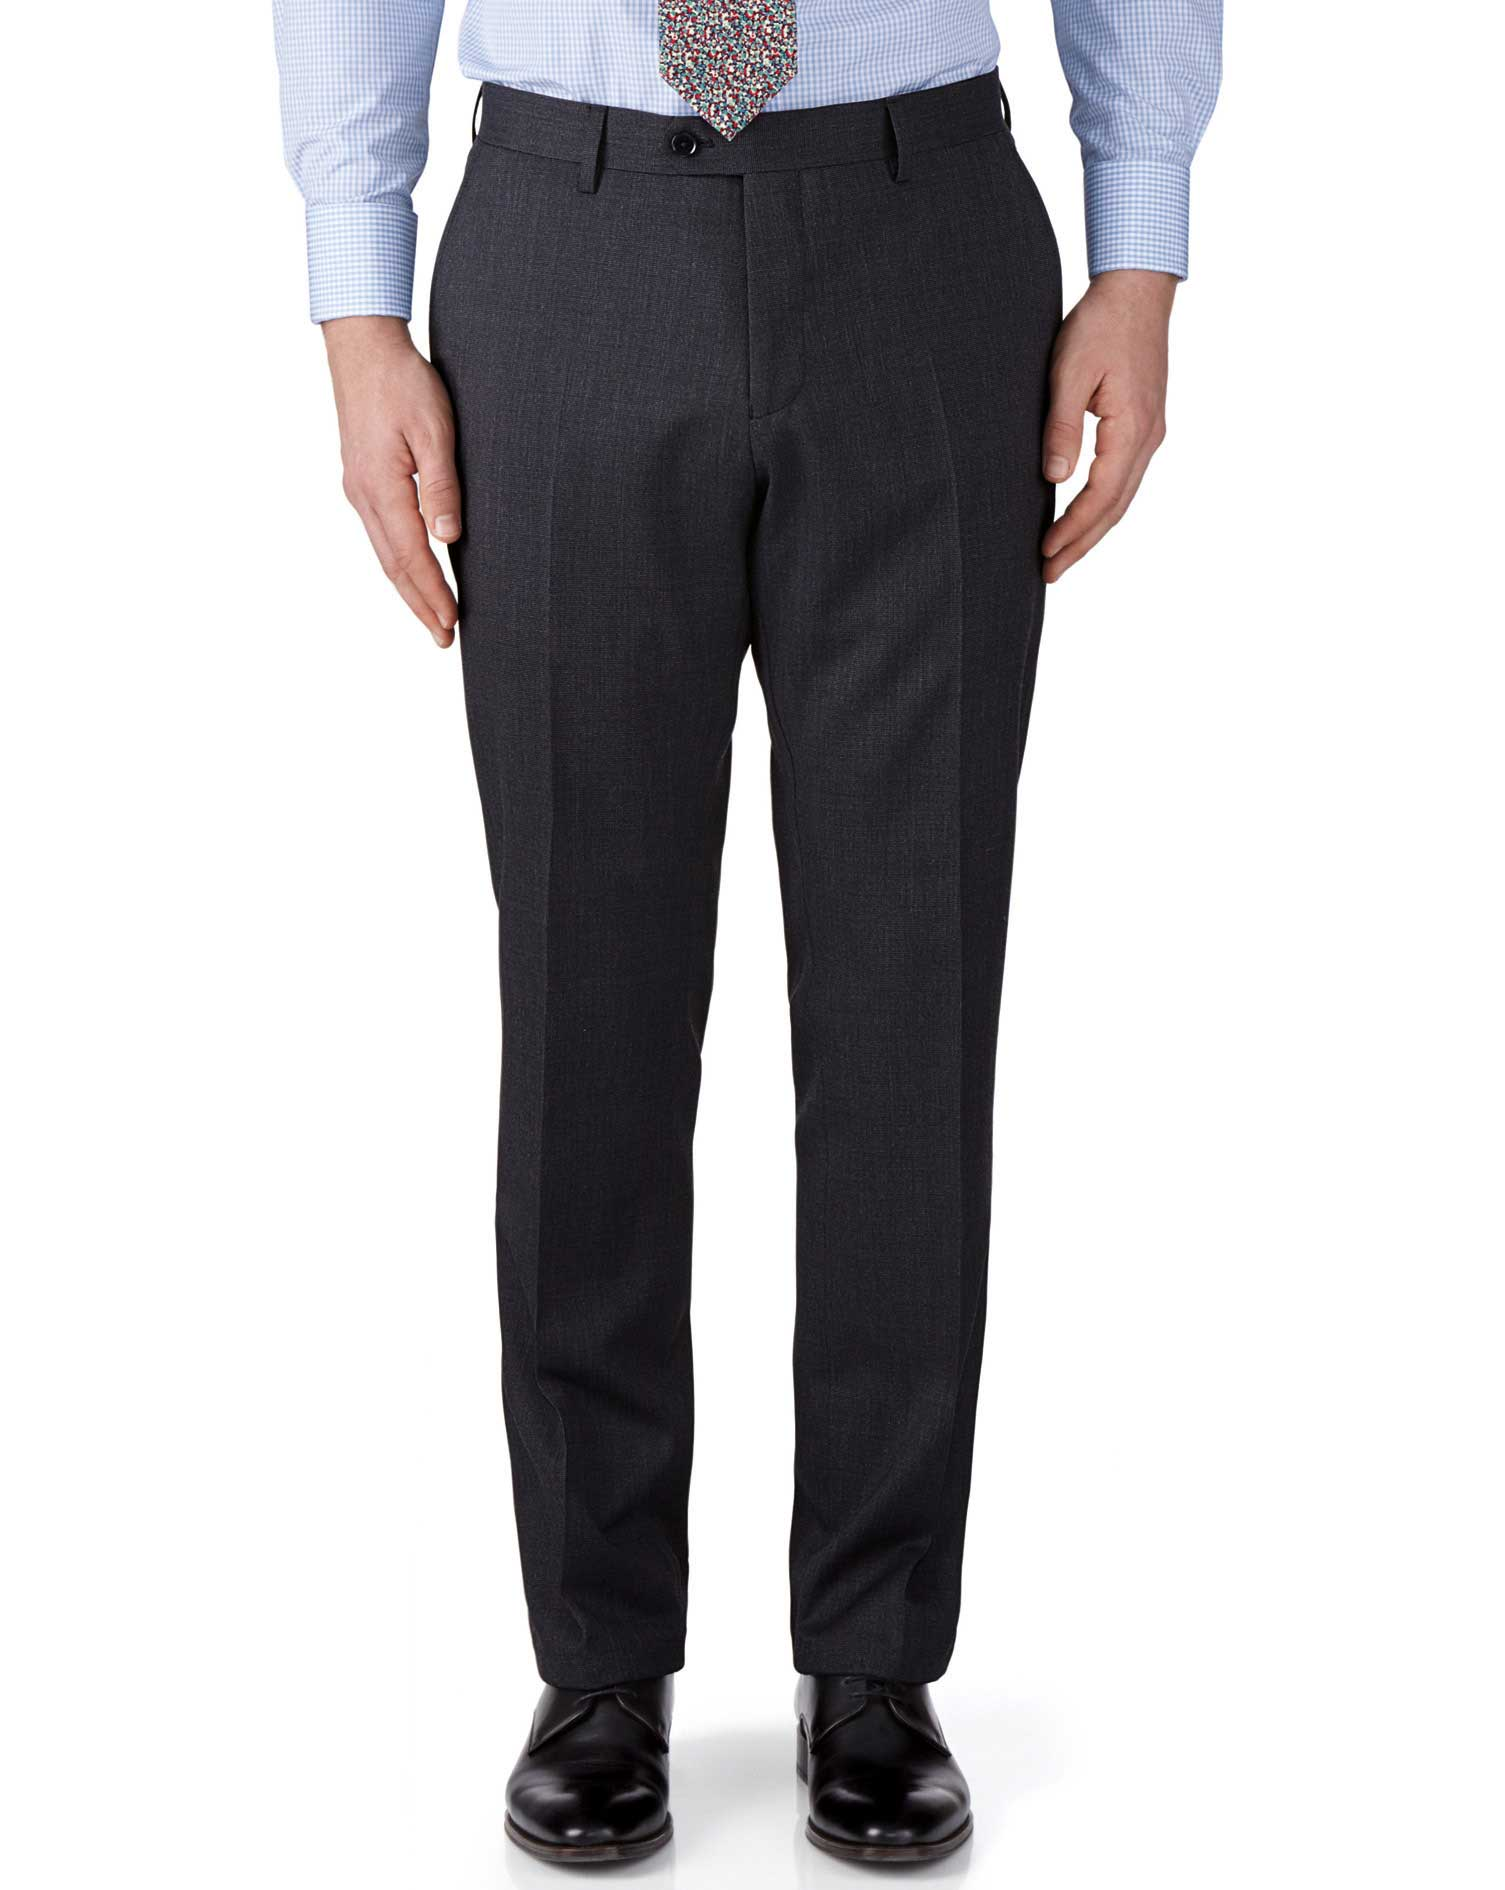 Charcoal classic fit end-on-end business suit trousers